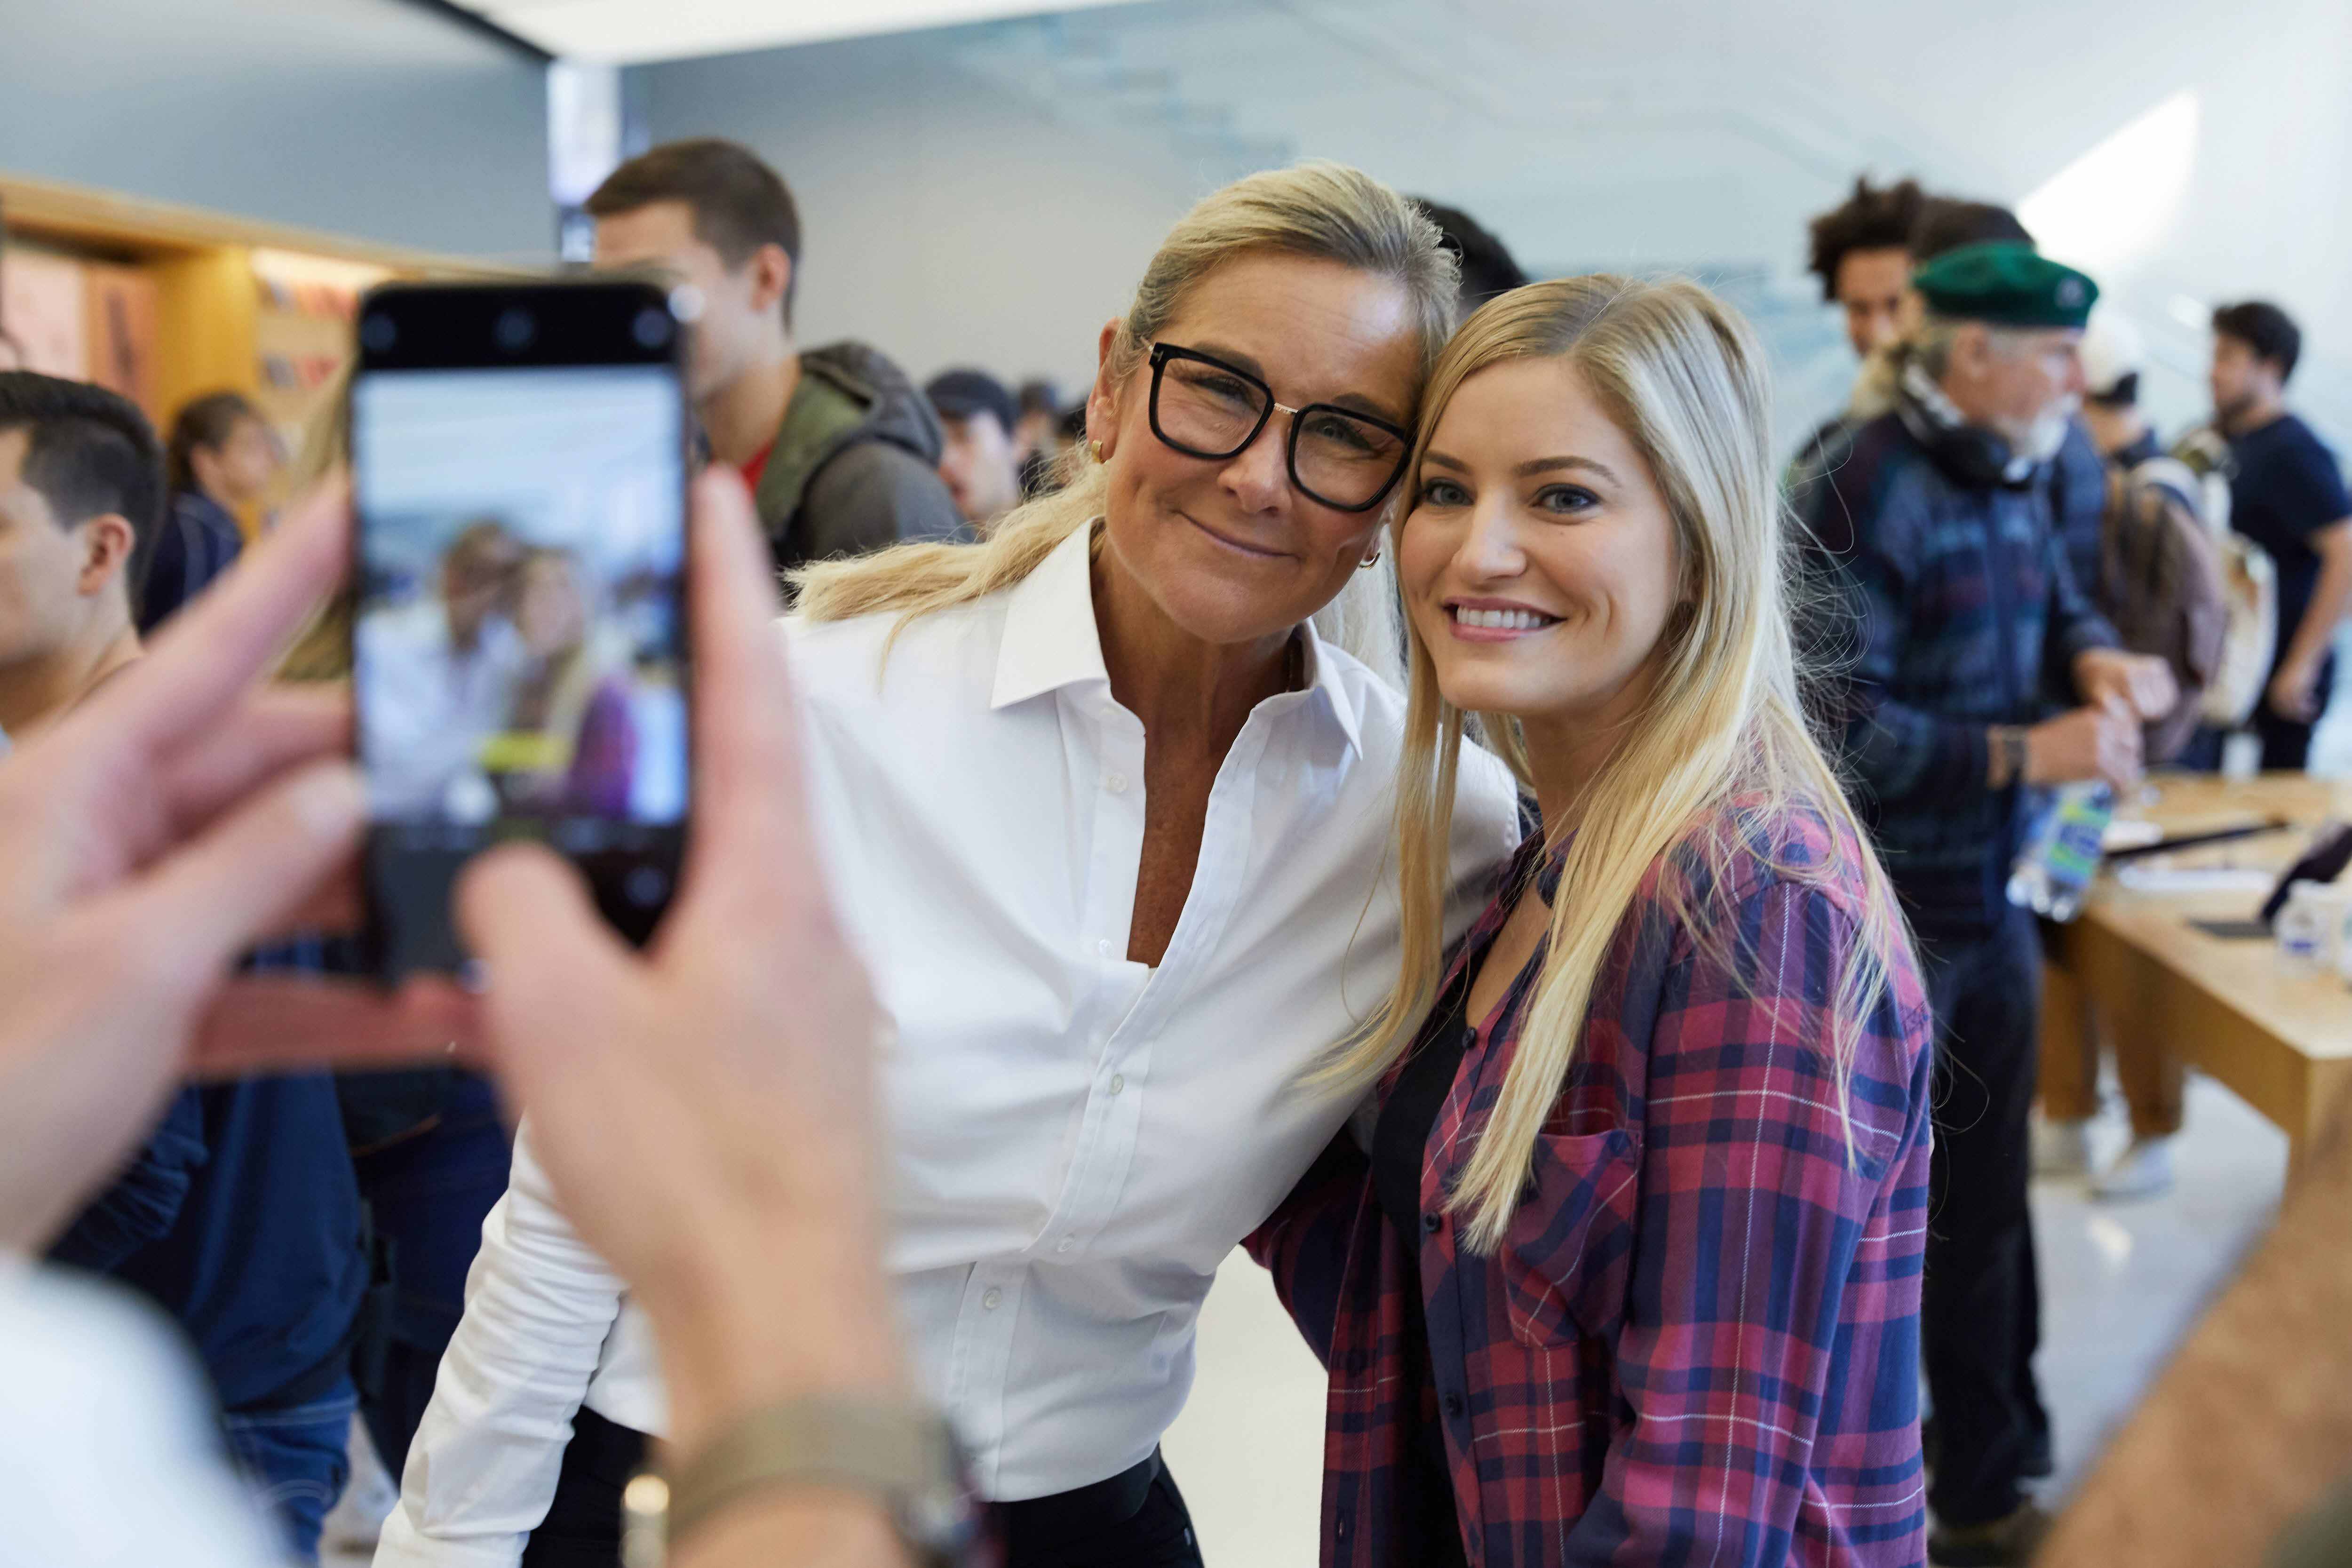 Iphone Xs Apple Watch Series 4 Sf Angela Ahrendts 09202018